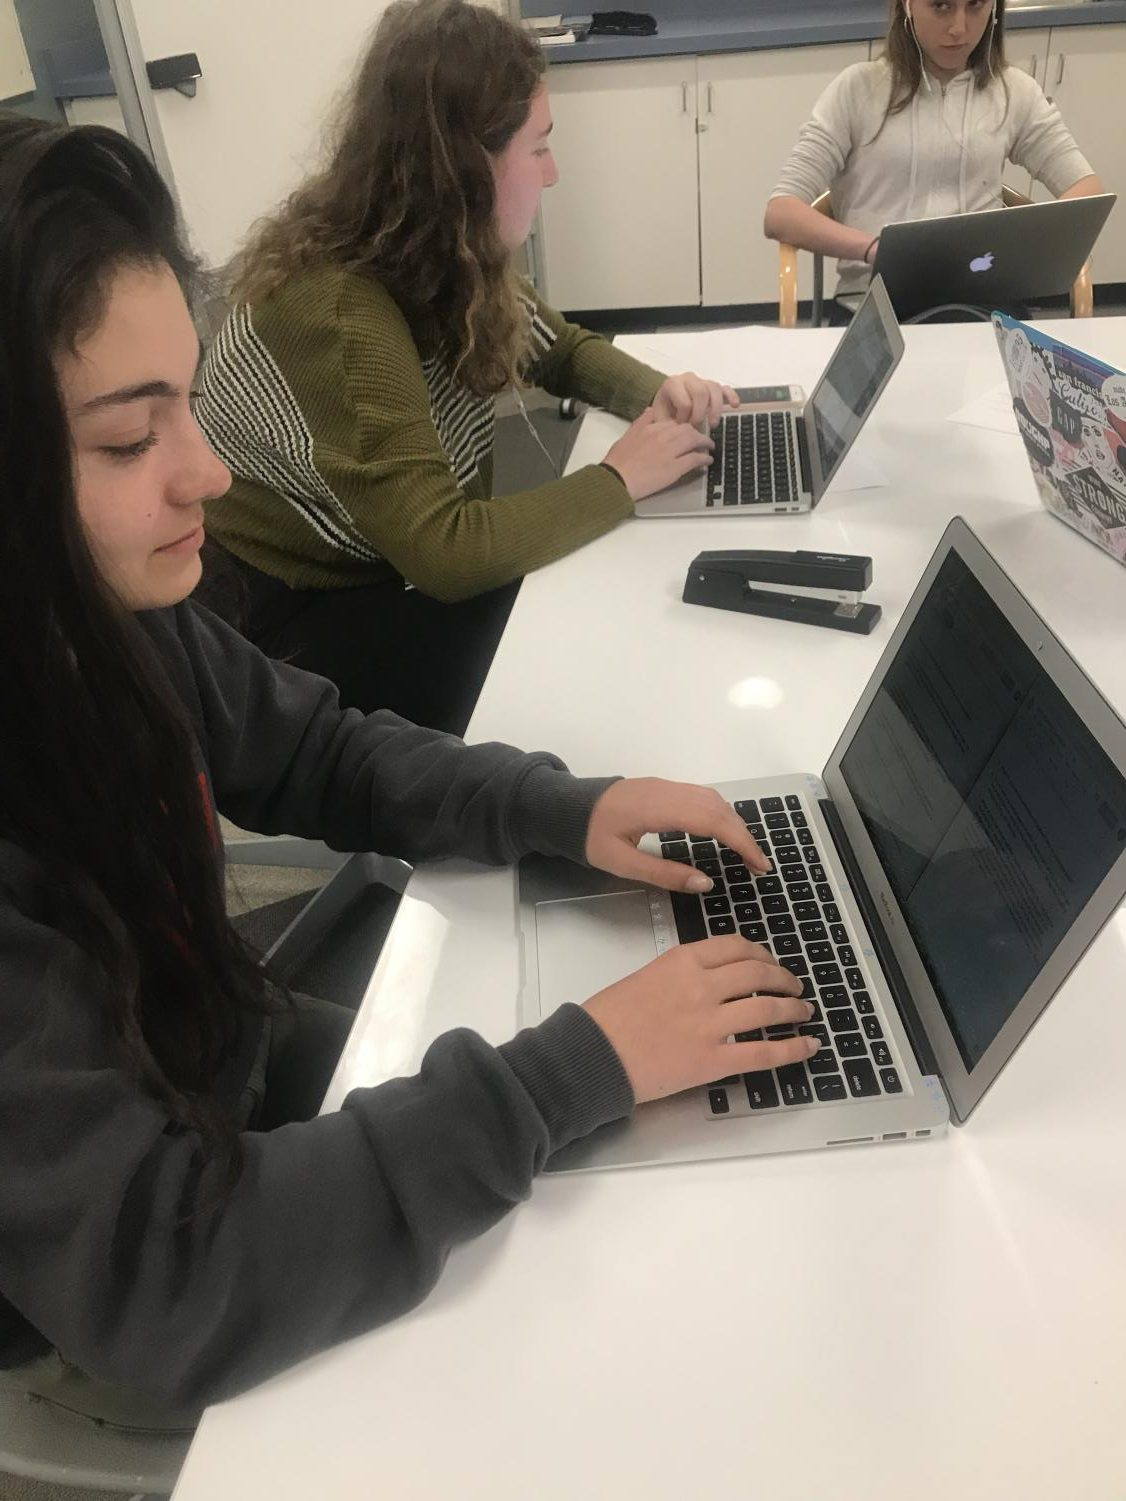 Laura Borne begins working on her college essay by answering a few brainstorming questions. The college counseling class takes place once every two weeks for all juniors.